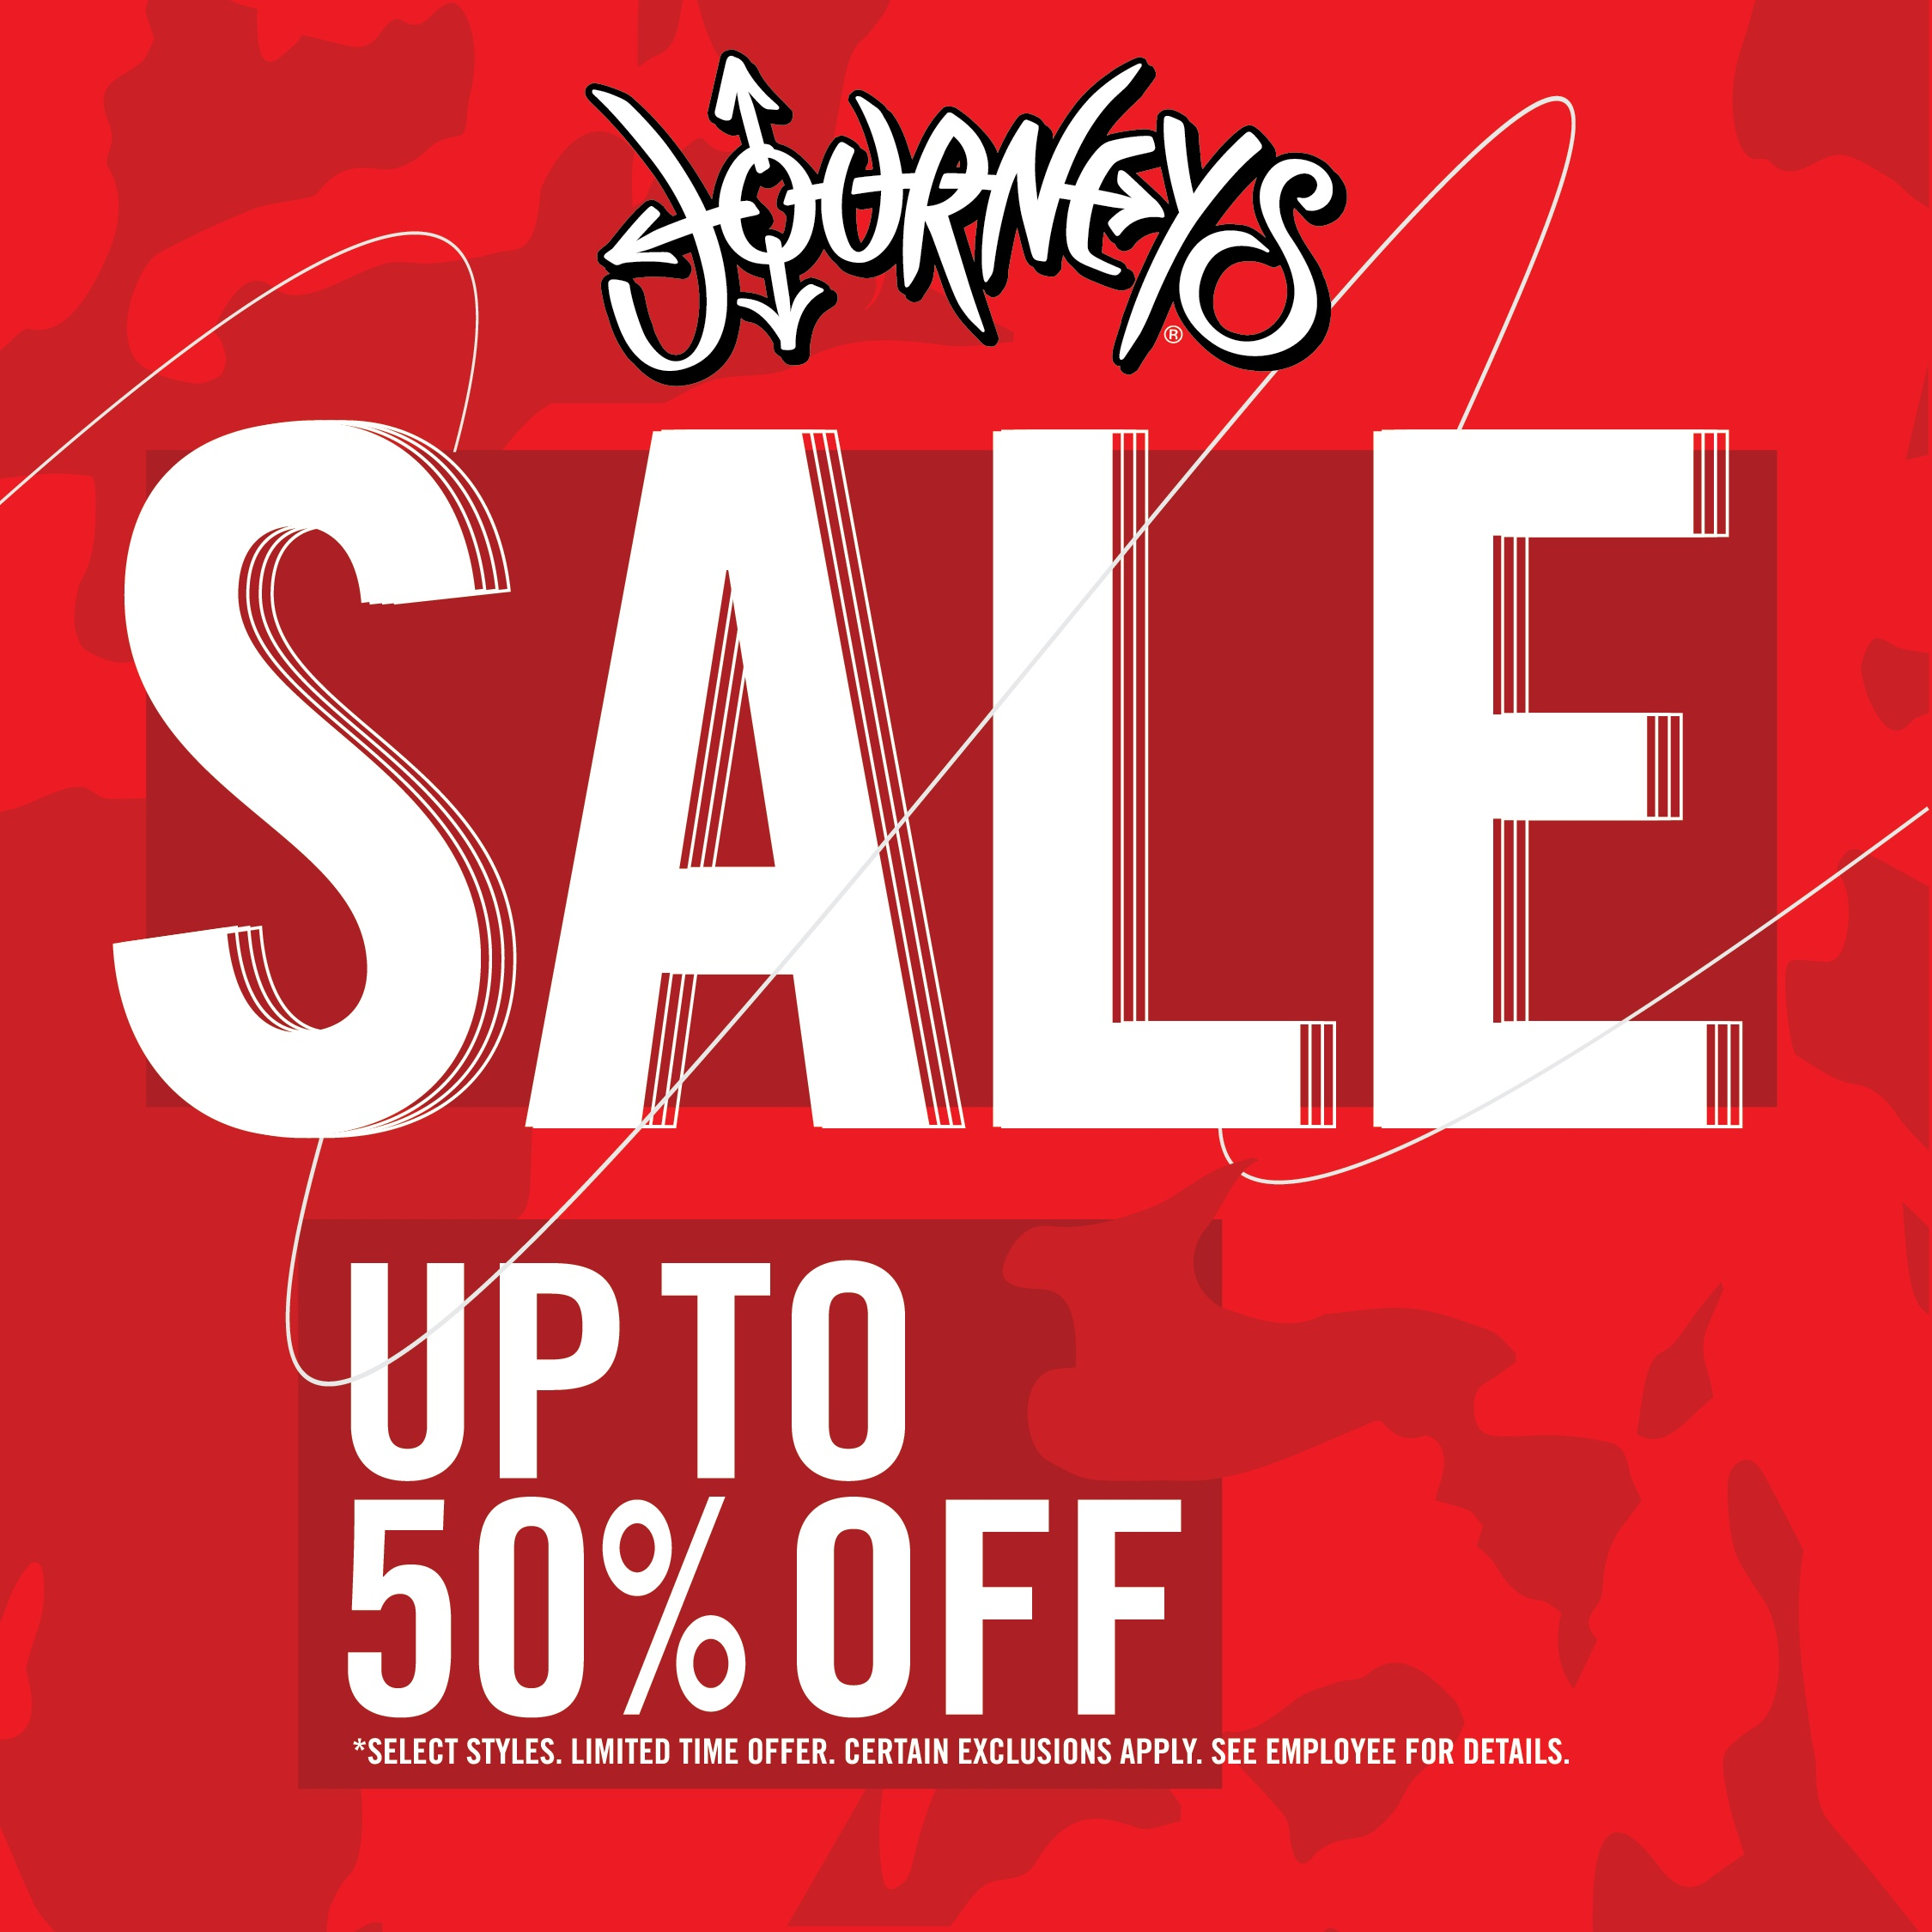 CLEARANCE SHOE SALE! from Journeys